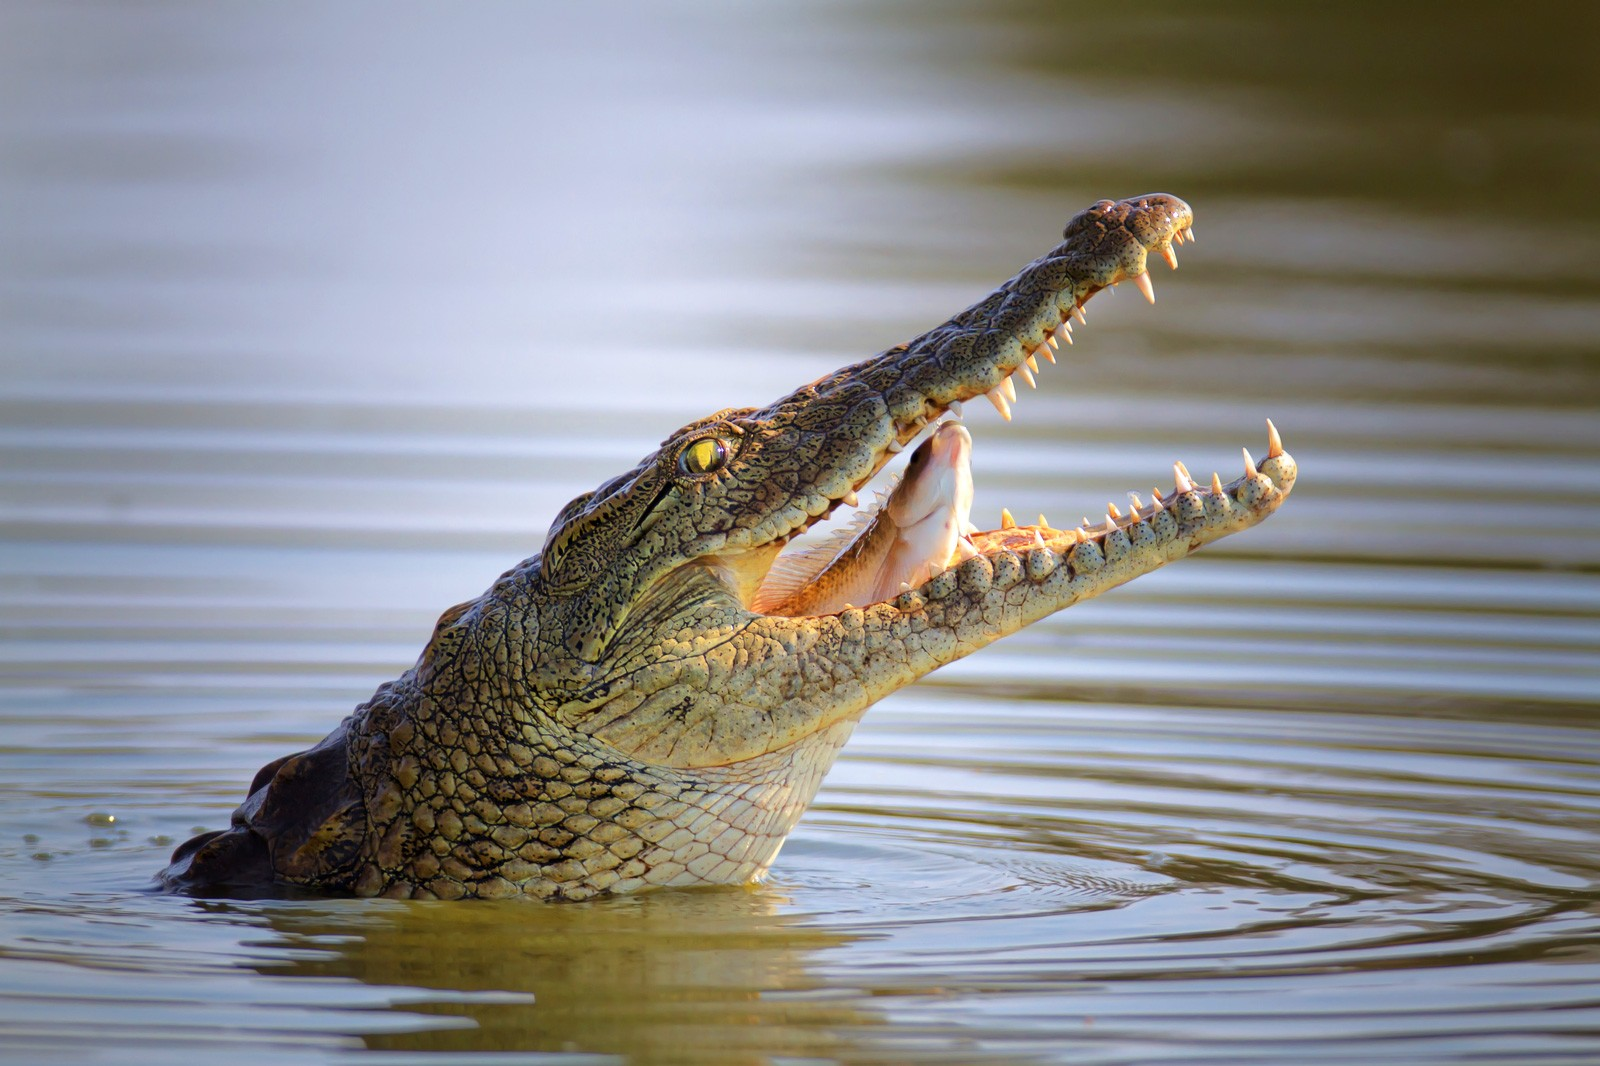 Symbolic Alligator Meaning and Crocodile Meaning